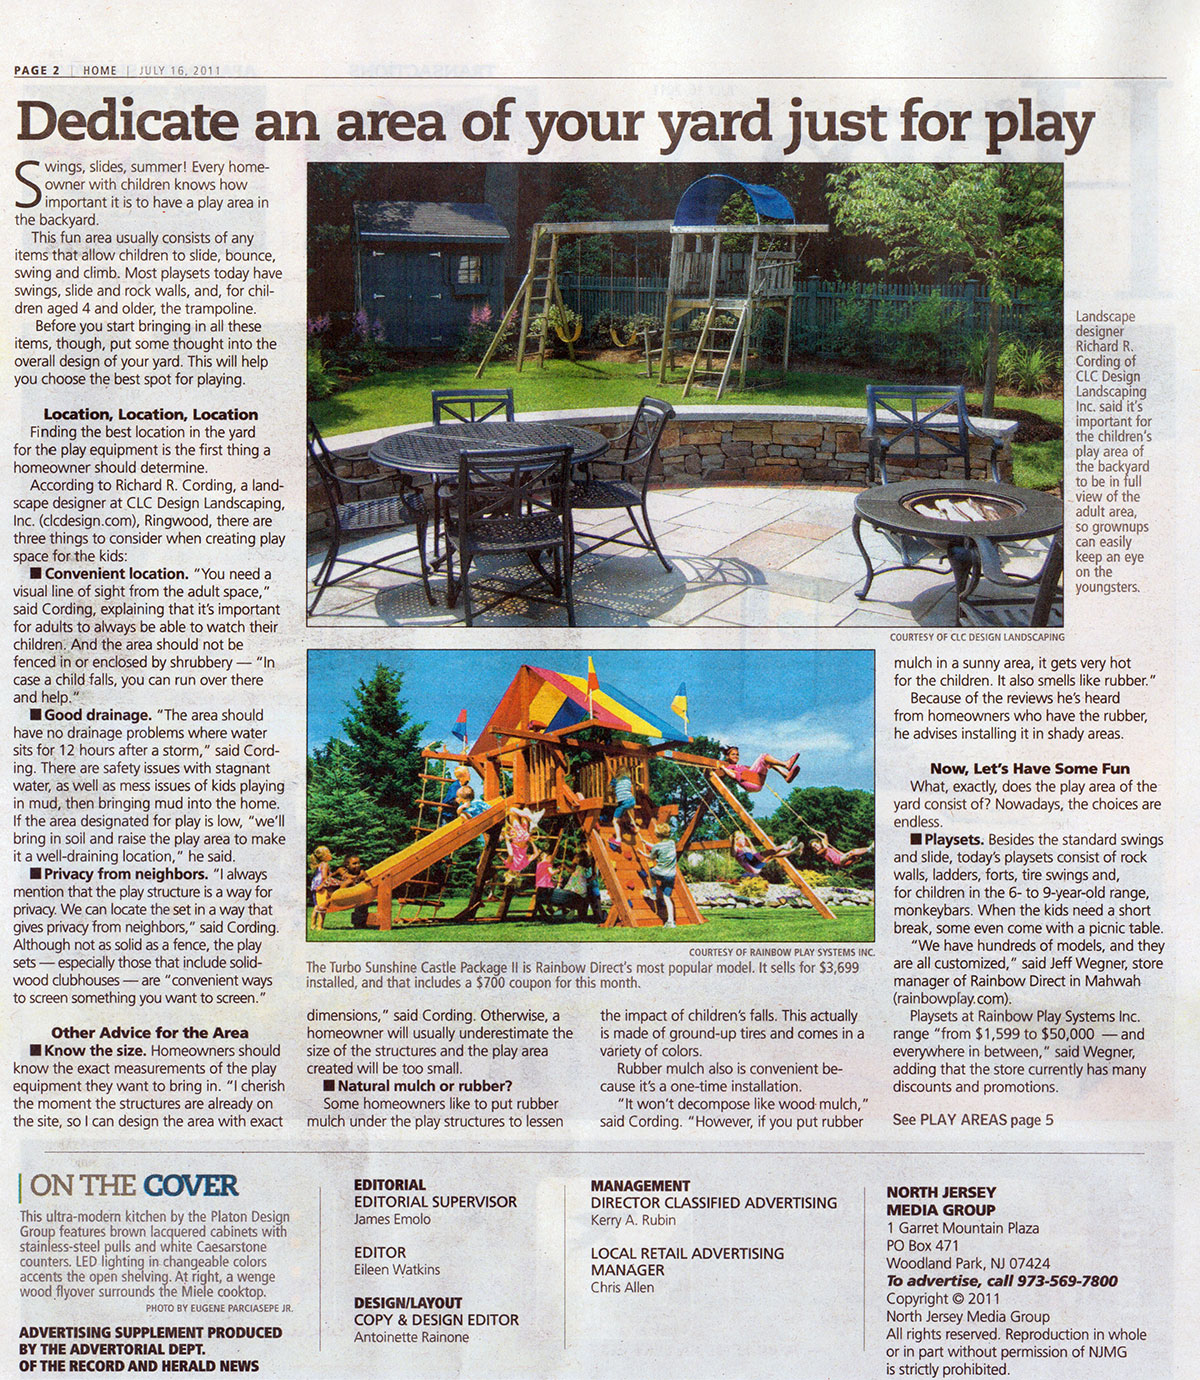 The Record - NJ Backyard Play Area (page 1)